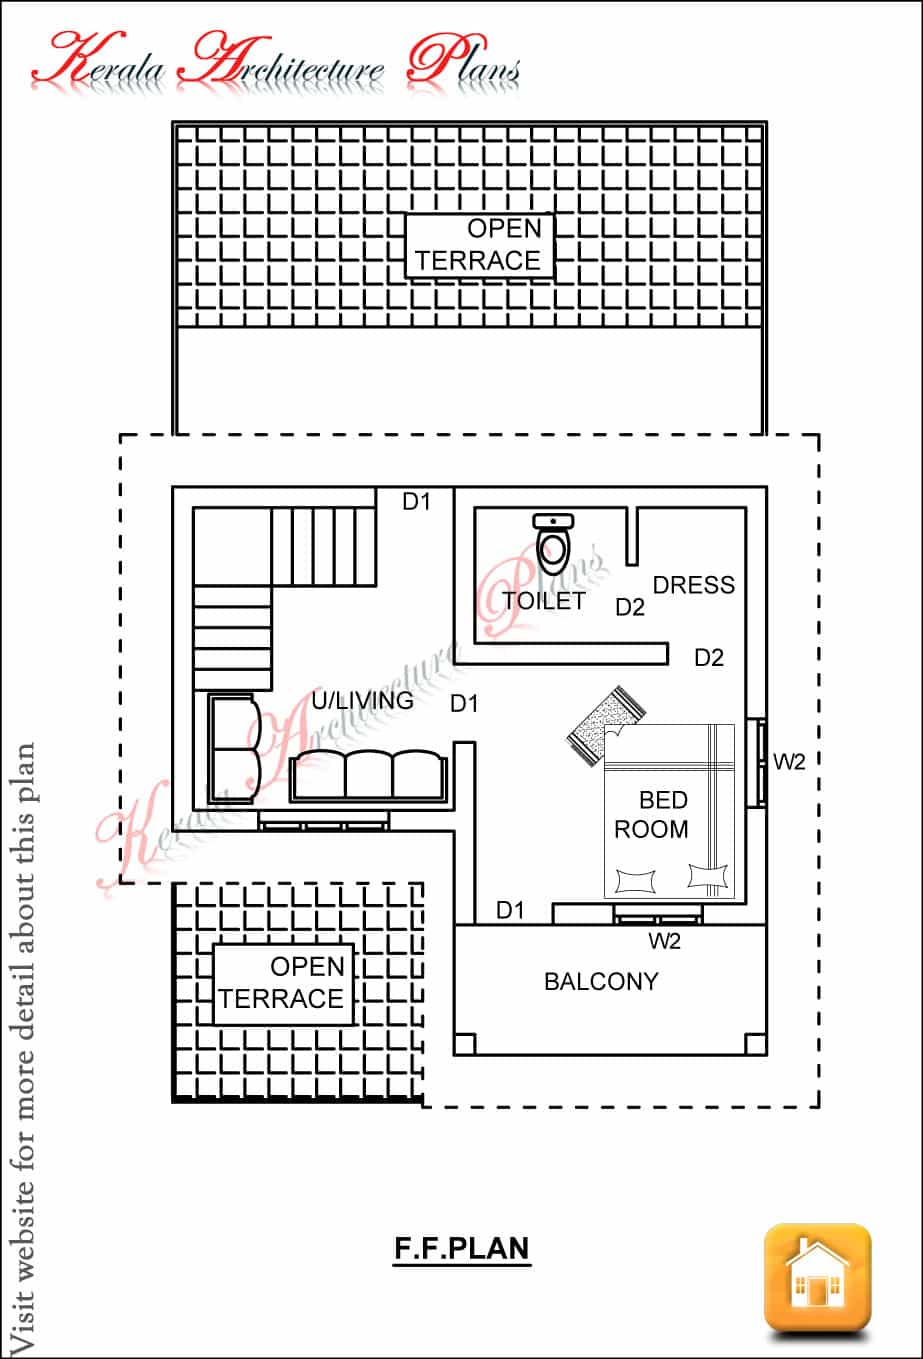 kerala house plans 1200 sq.ft ff kerala house plans 1200 sq ft with photos khp,Floor Plans Kerala Style Houses